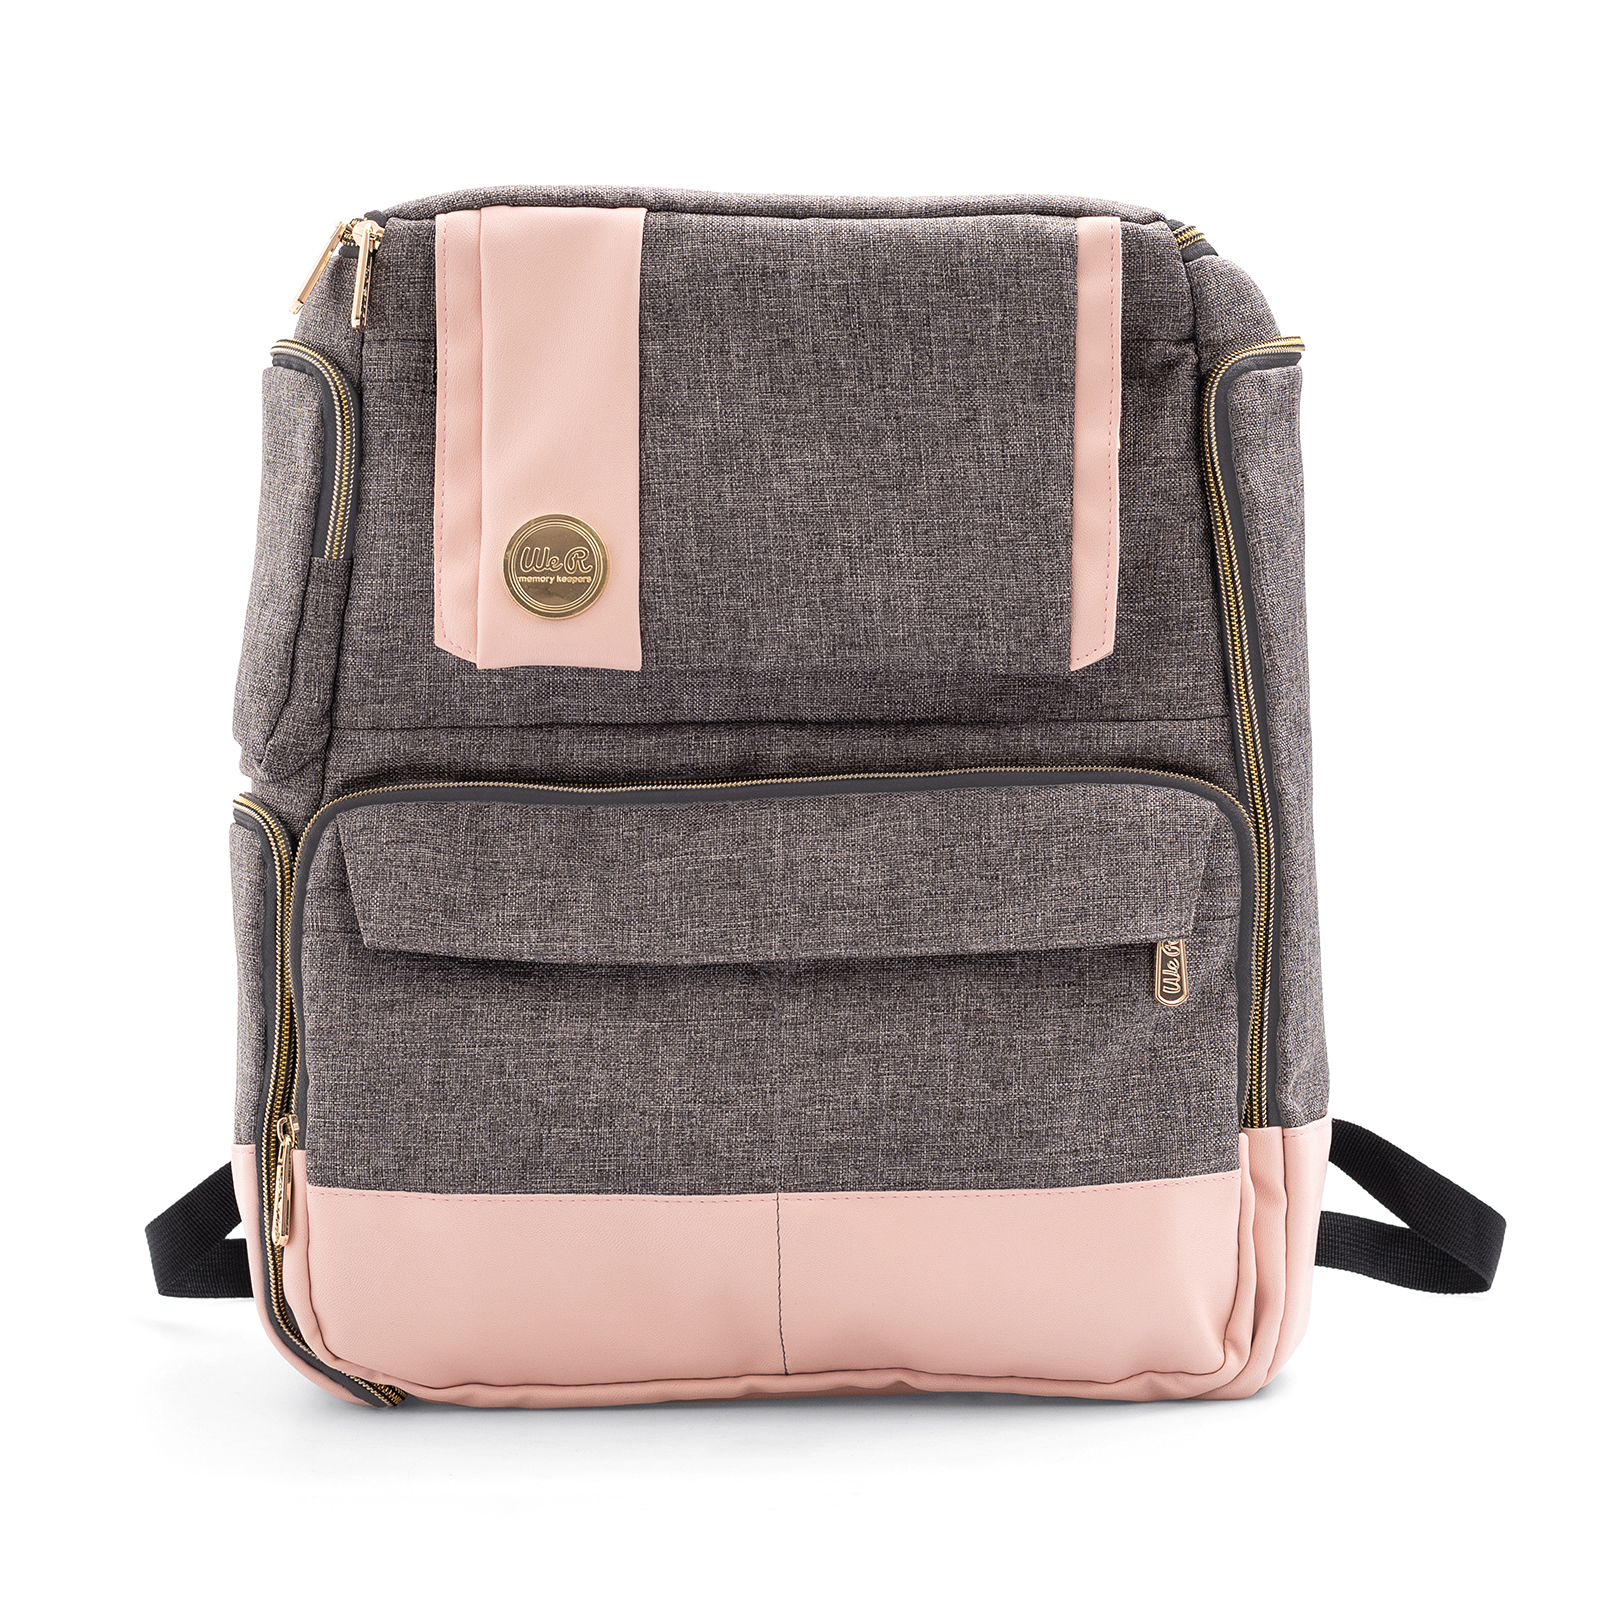 Crafter's Backpack by We R Memory Keepers